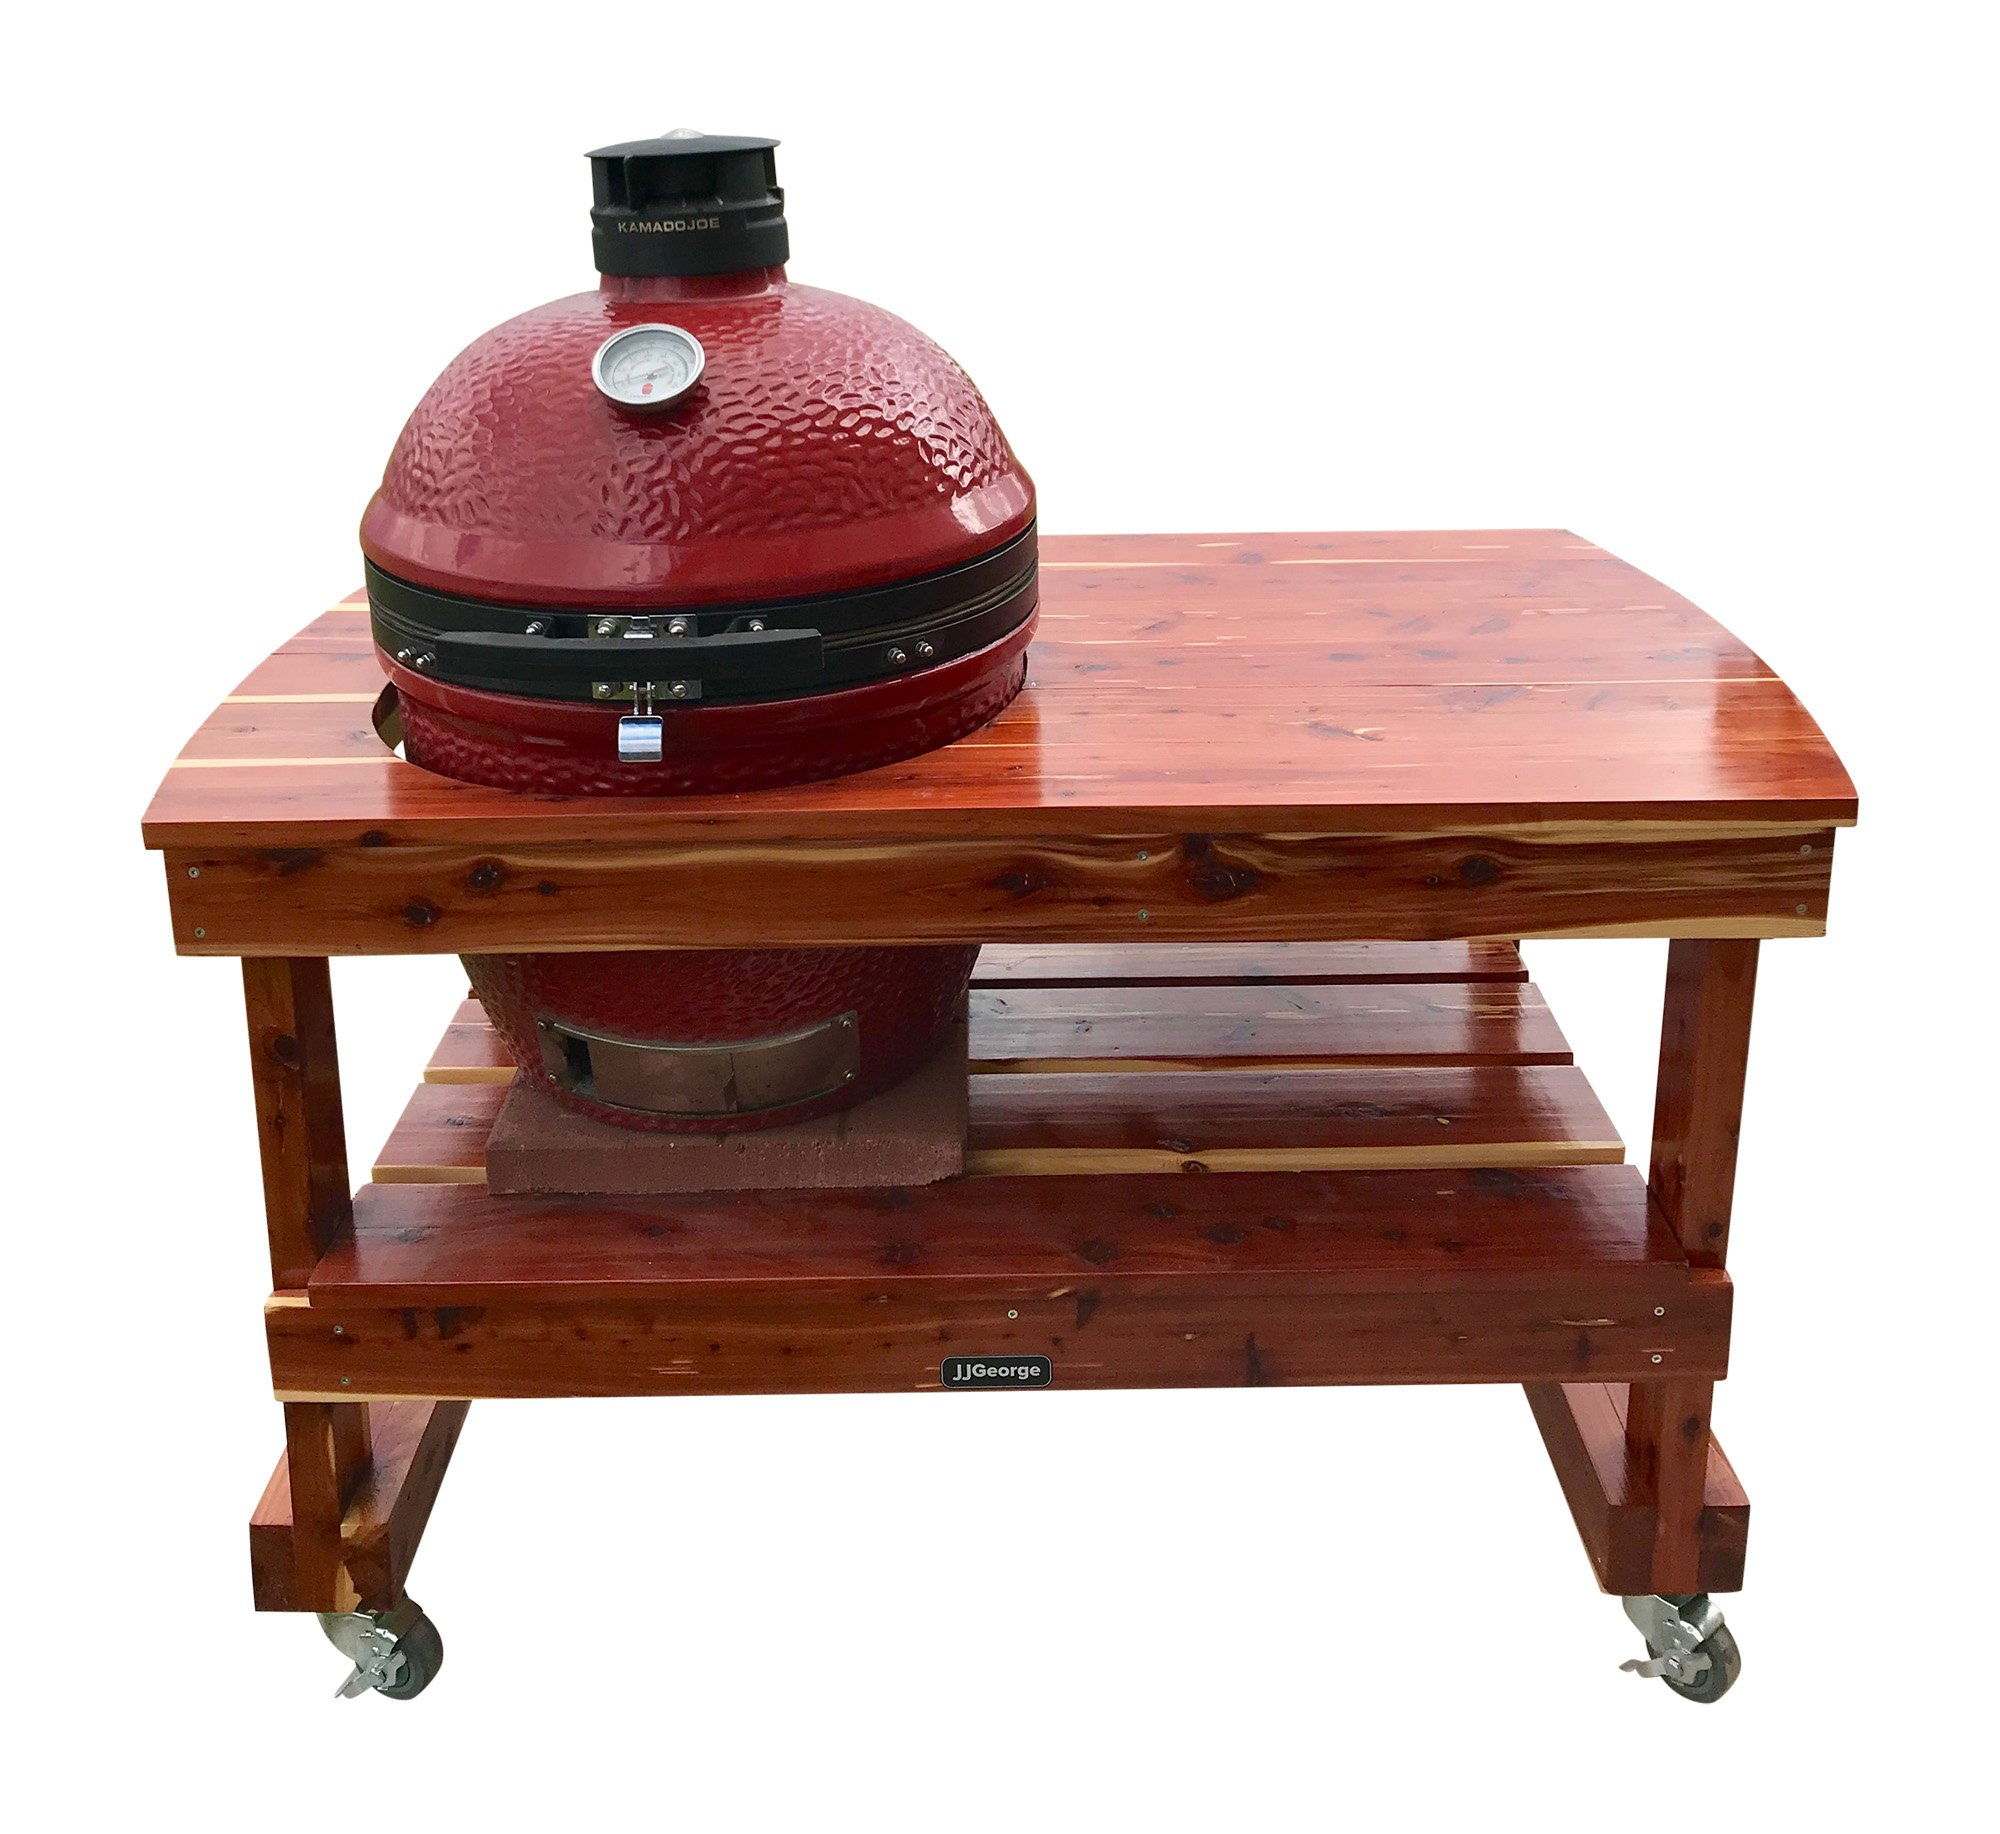 JJGeorge Grill Table for Classic Kamado Joe II - Free Table Cover Included by JJGeorge